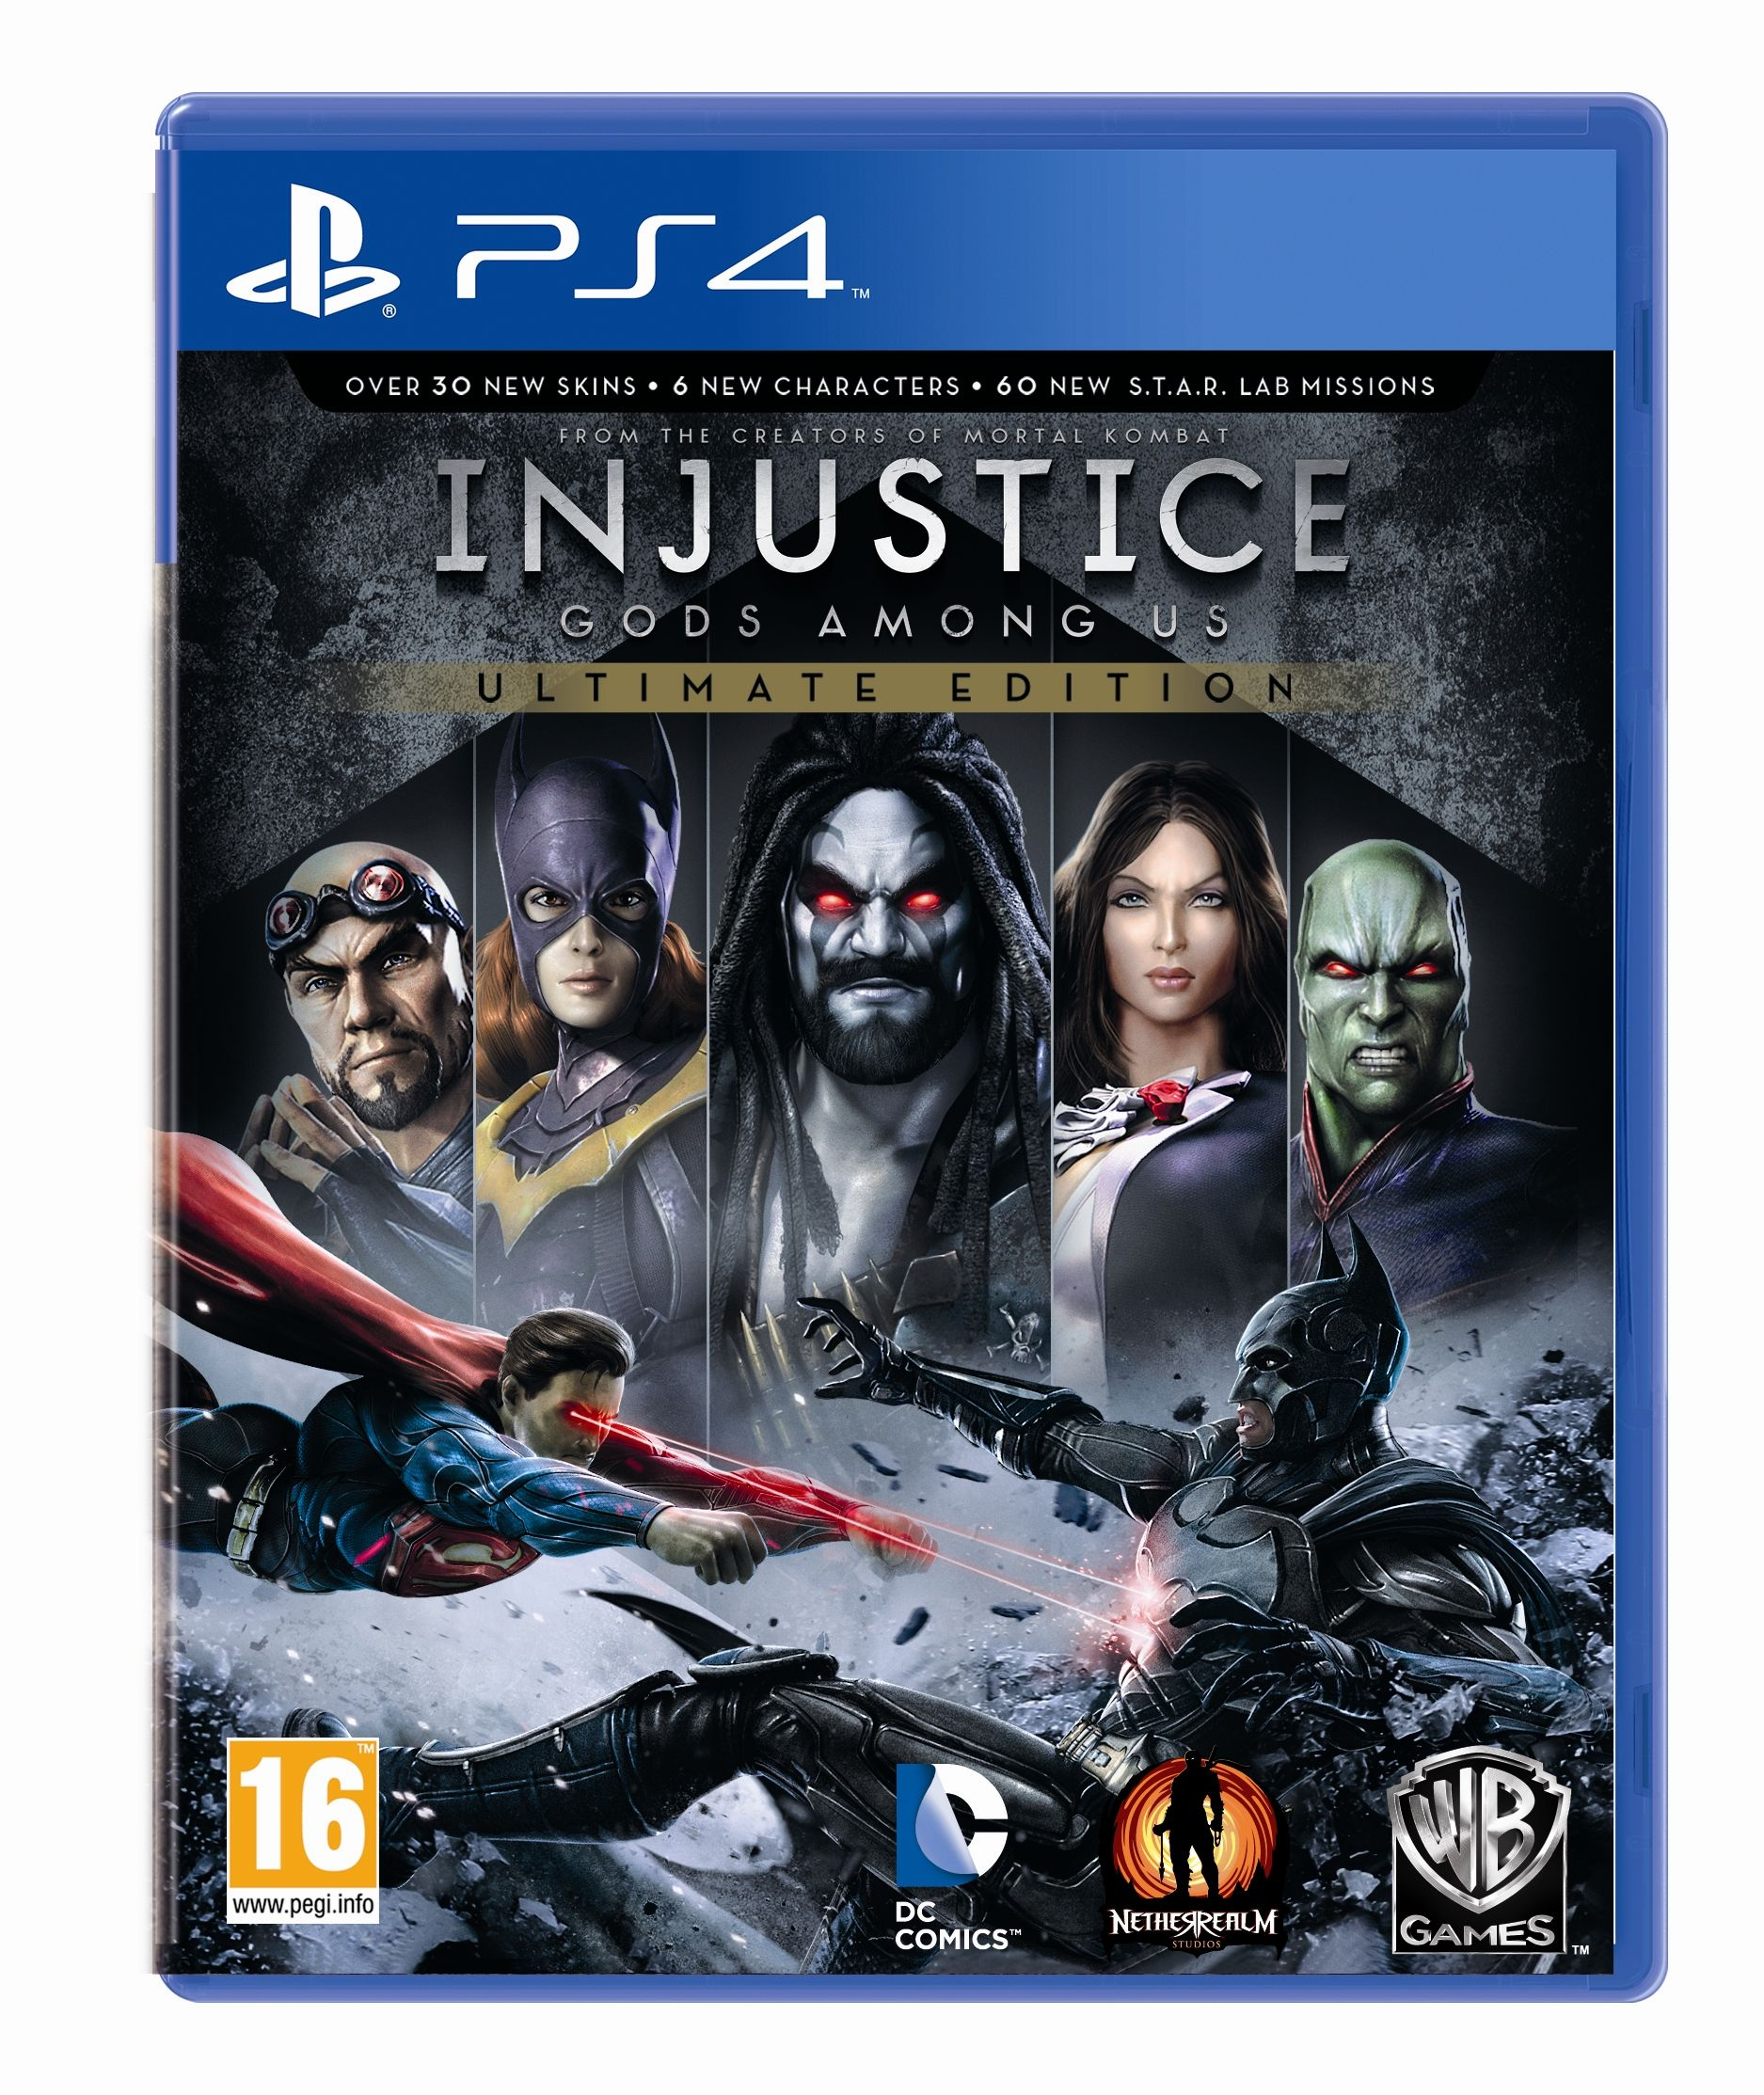 Injustice God Among Us Game Cover PS Game Cover Pinterest - Injustice god among us buttom map